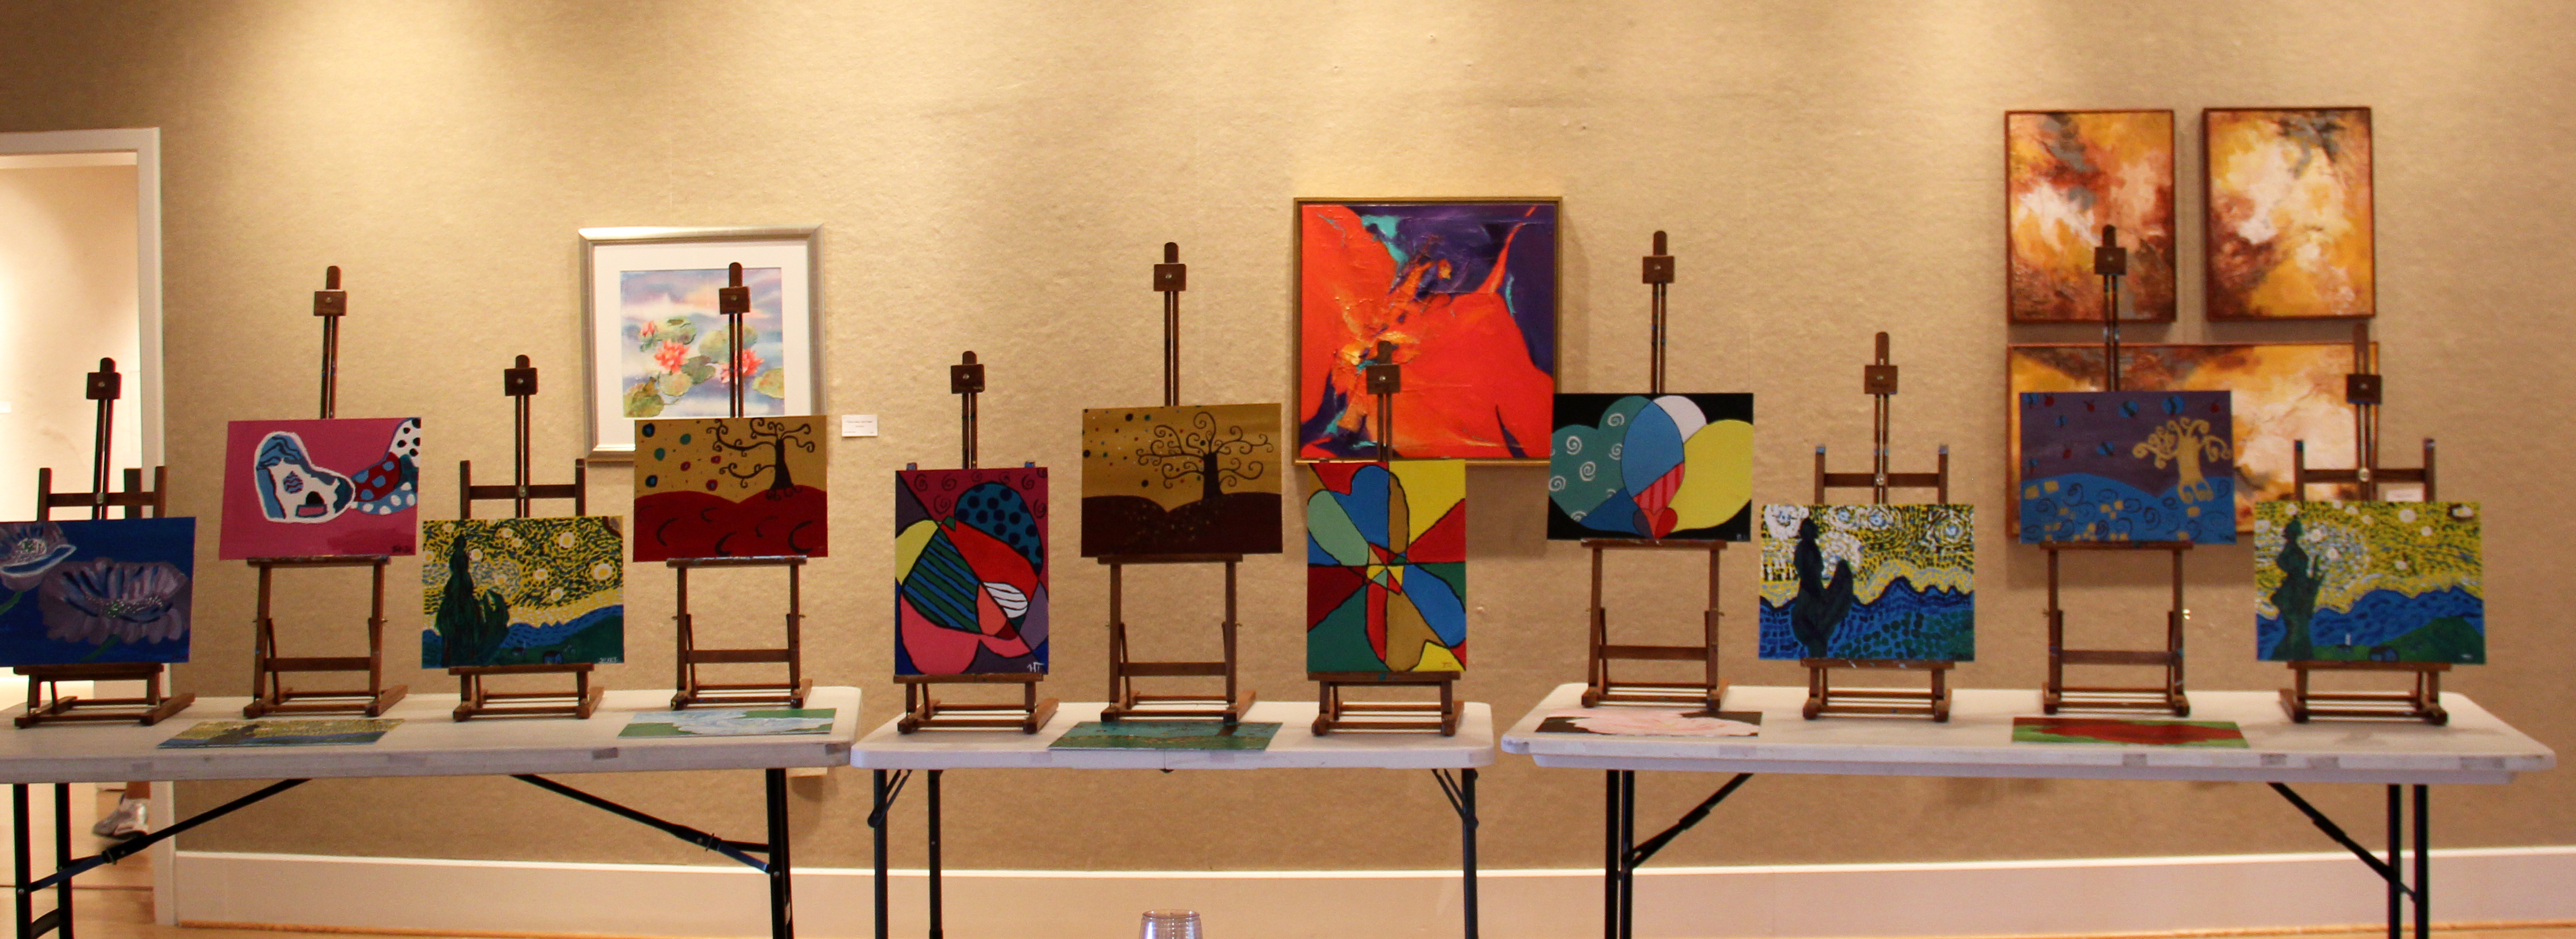 Kids Exhibition Booth : Artist studios at the promenade centers for arts